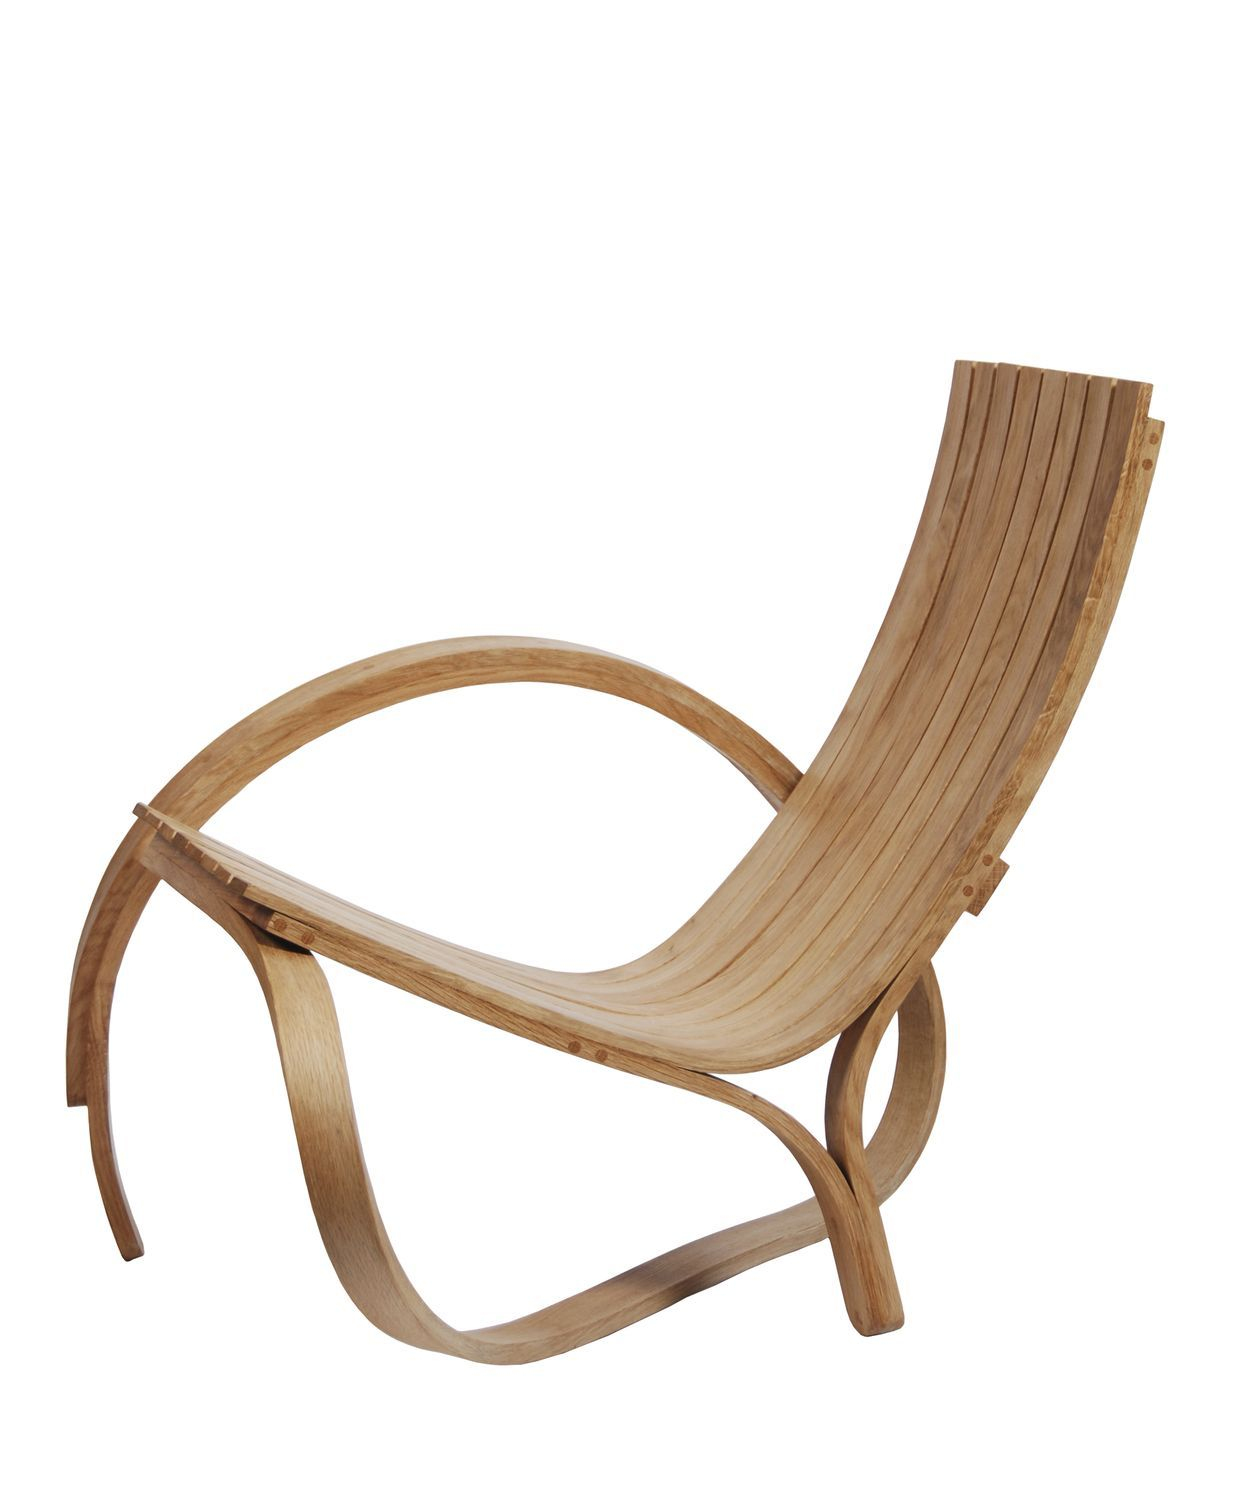 Organic design wood chair design pinterest for Product design chair